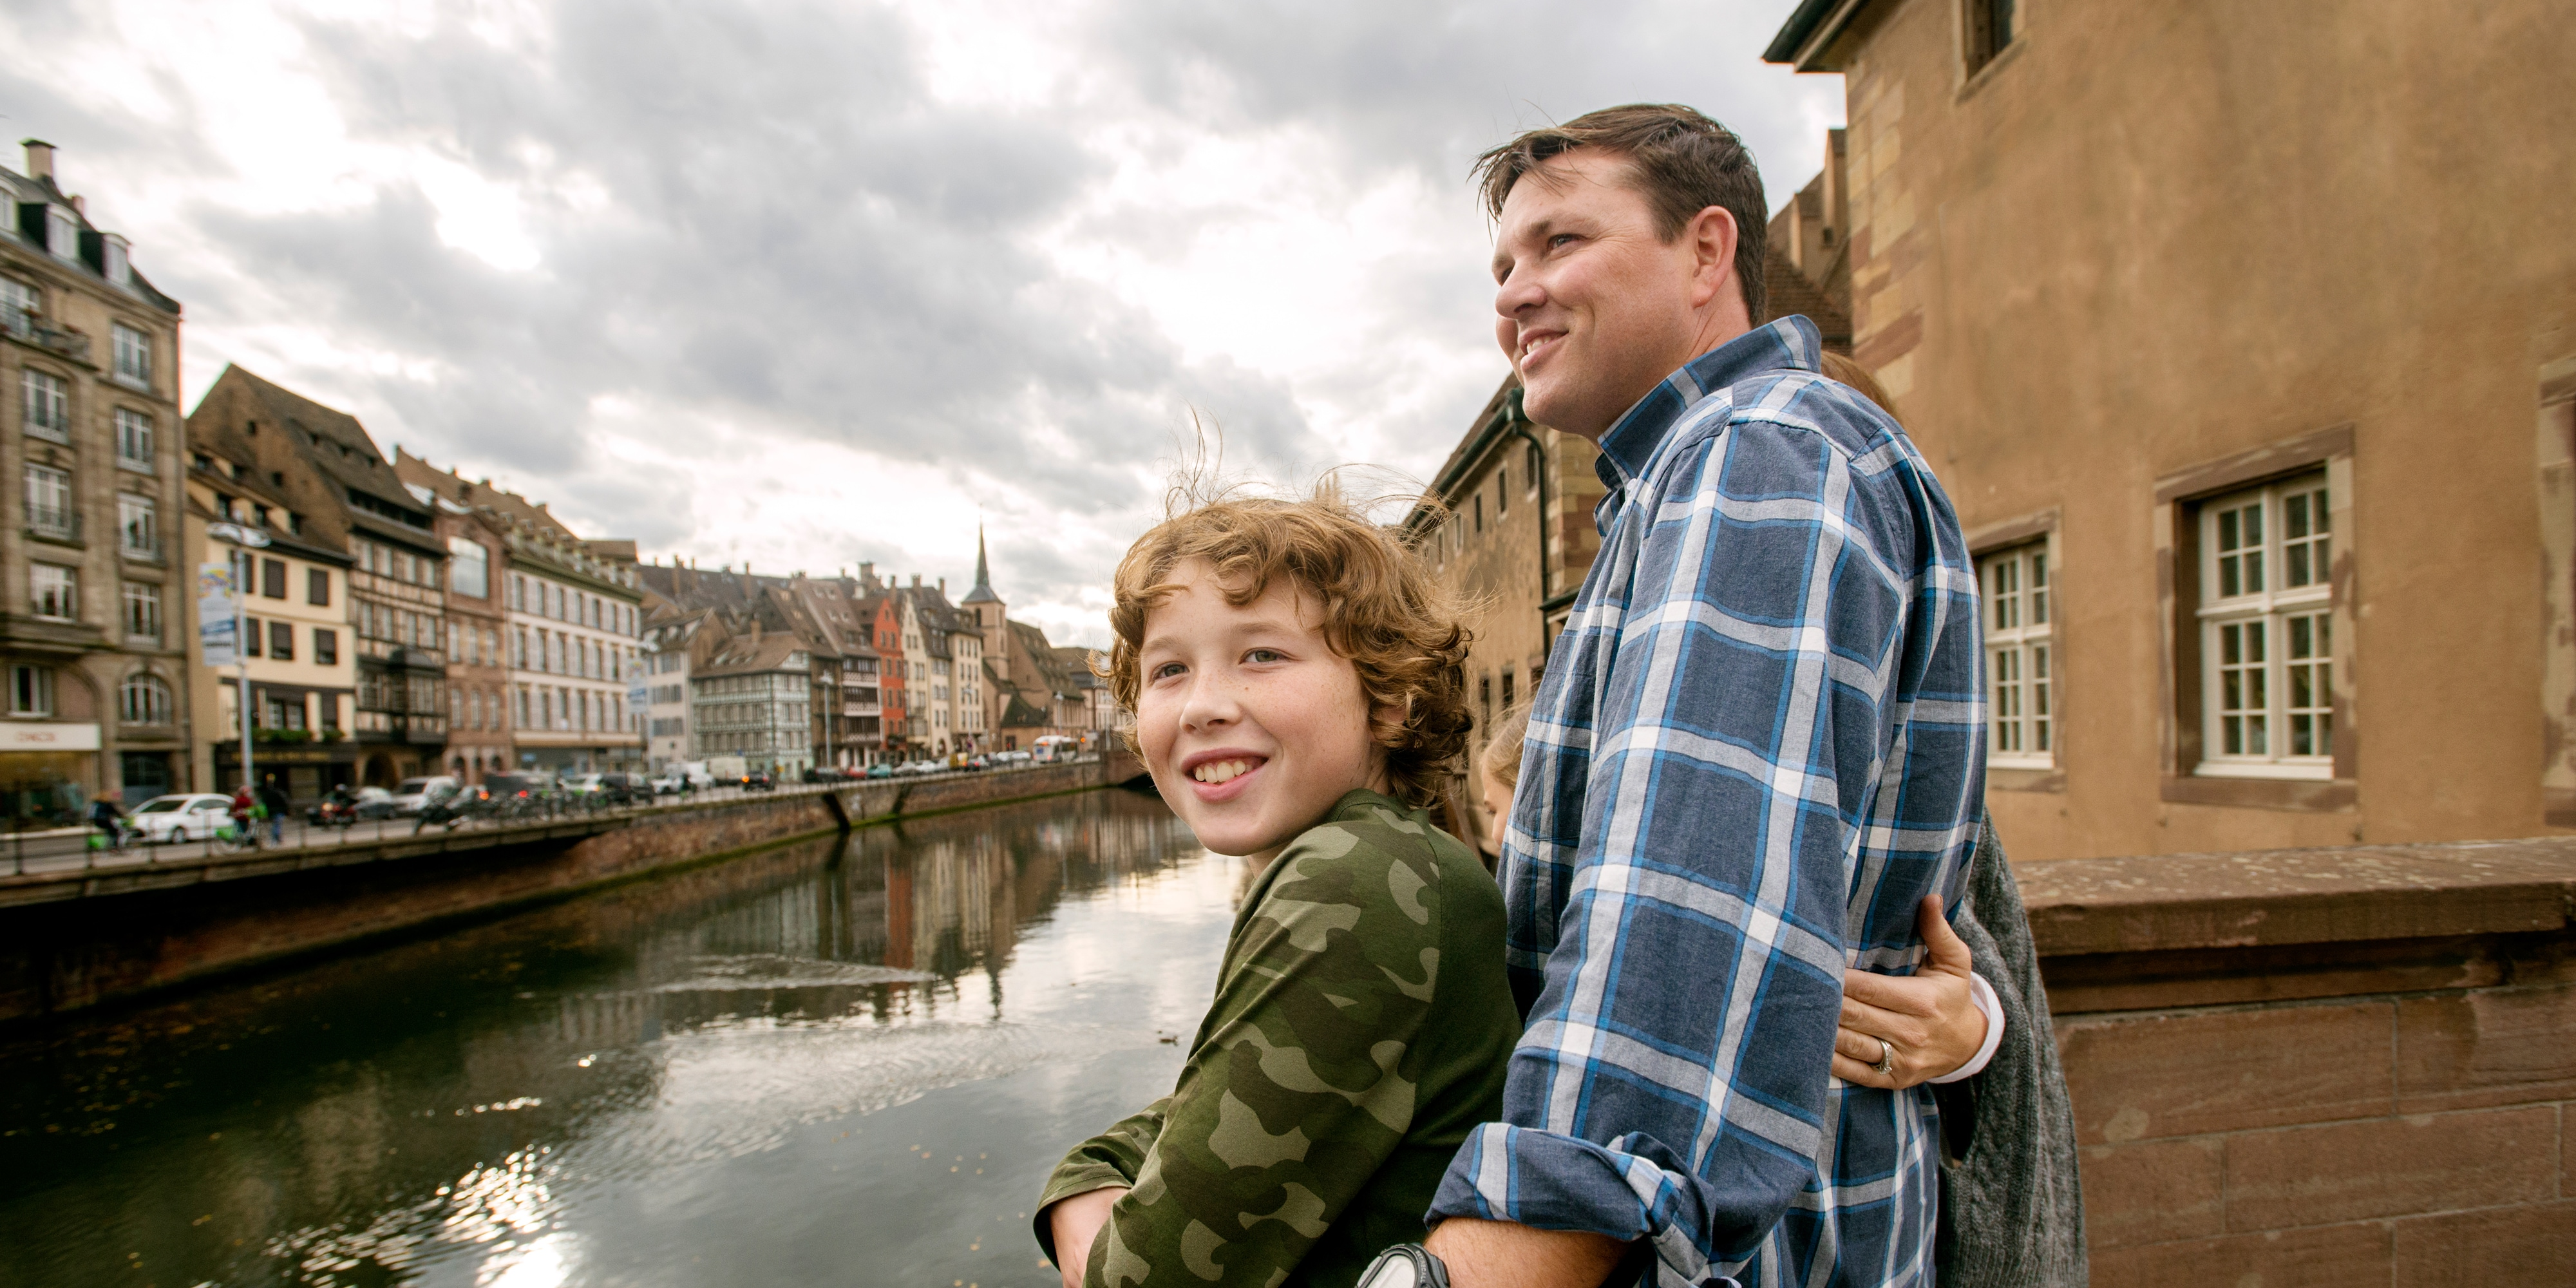 A family of 3 on a boardwalk overlooking a waterway in an old European town